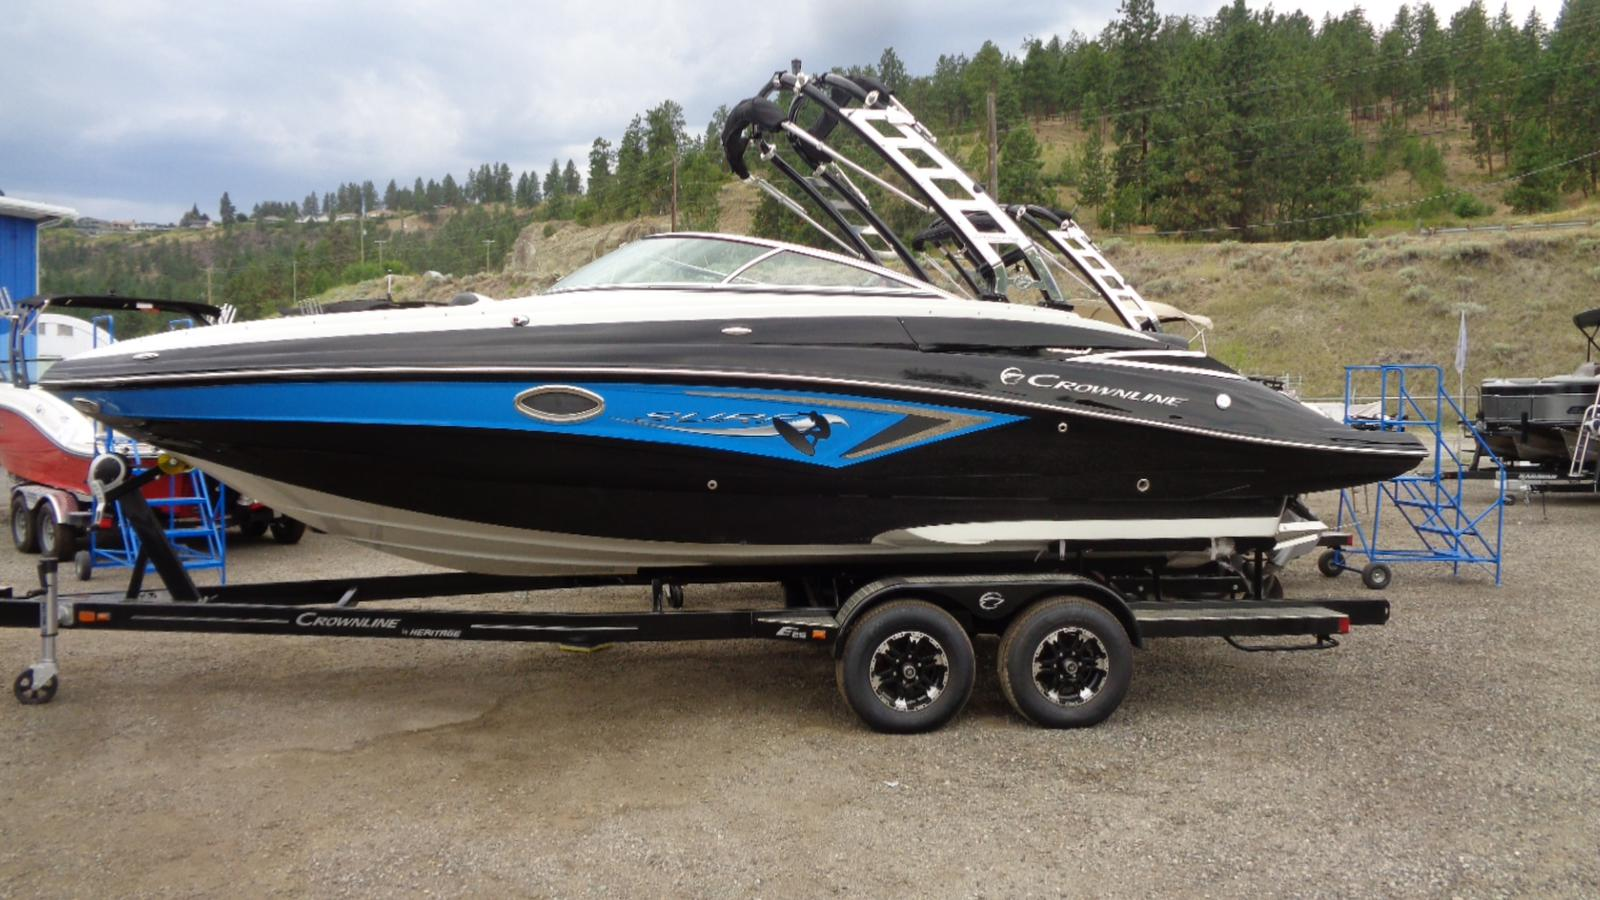 For Sale: 2019 Crownline E255 Surf 24ft<br/>Dockside Marine Centre, LTD.